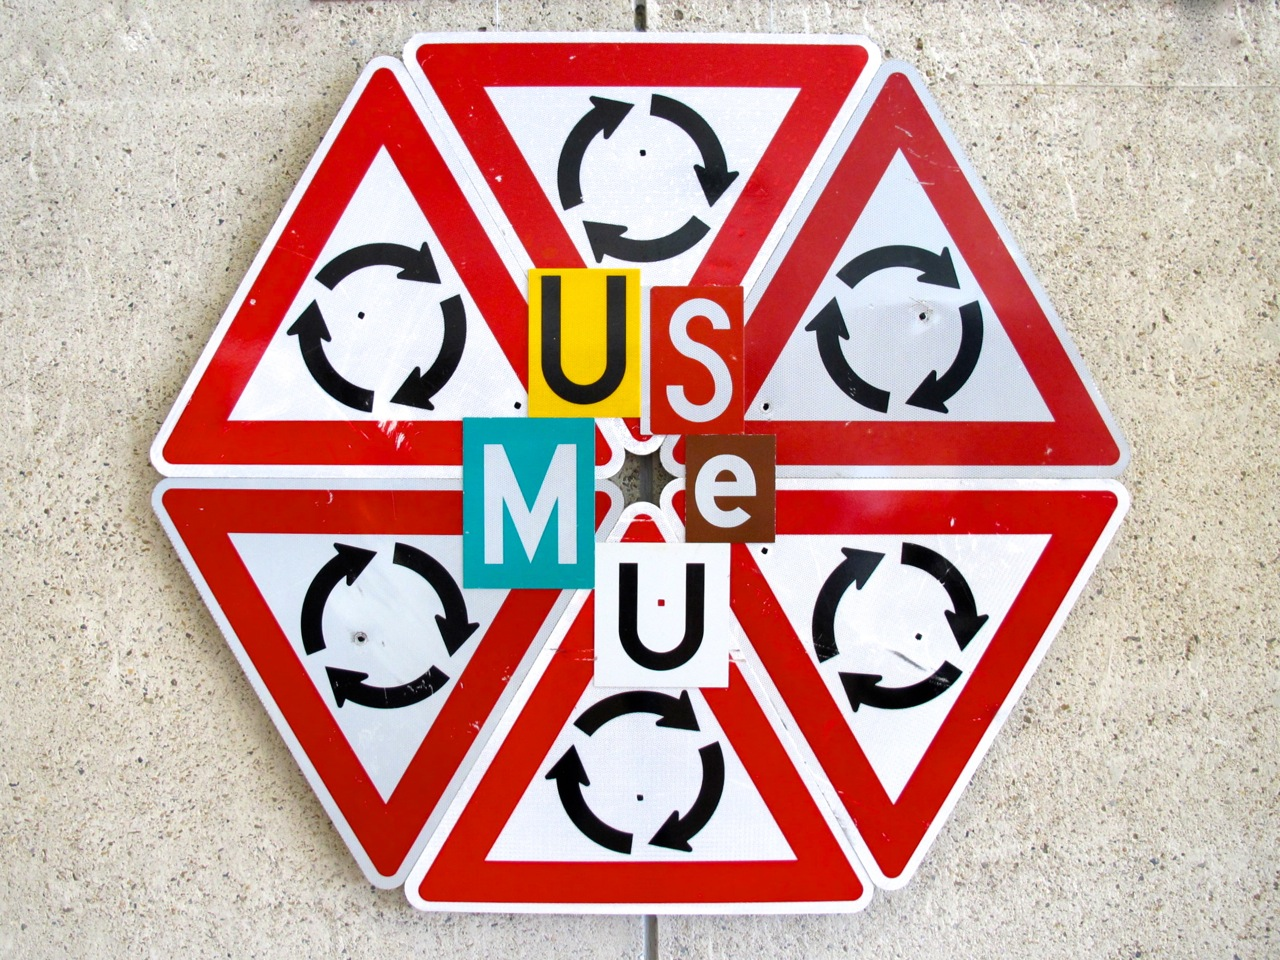 US/ME/U/MUSEUM - Alan James, 2012